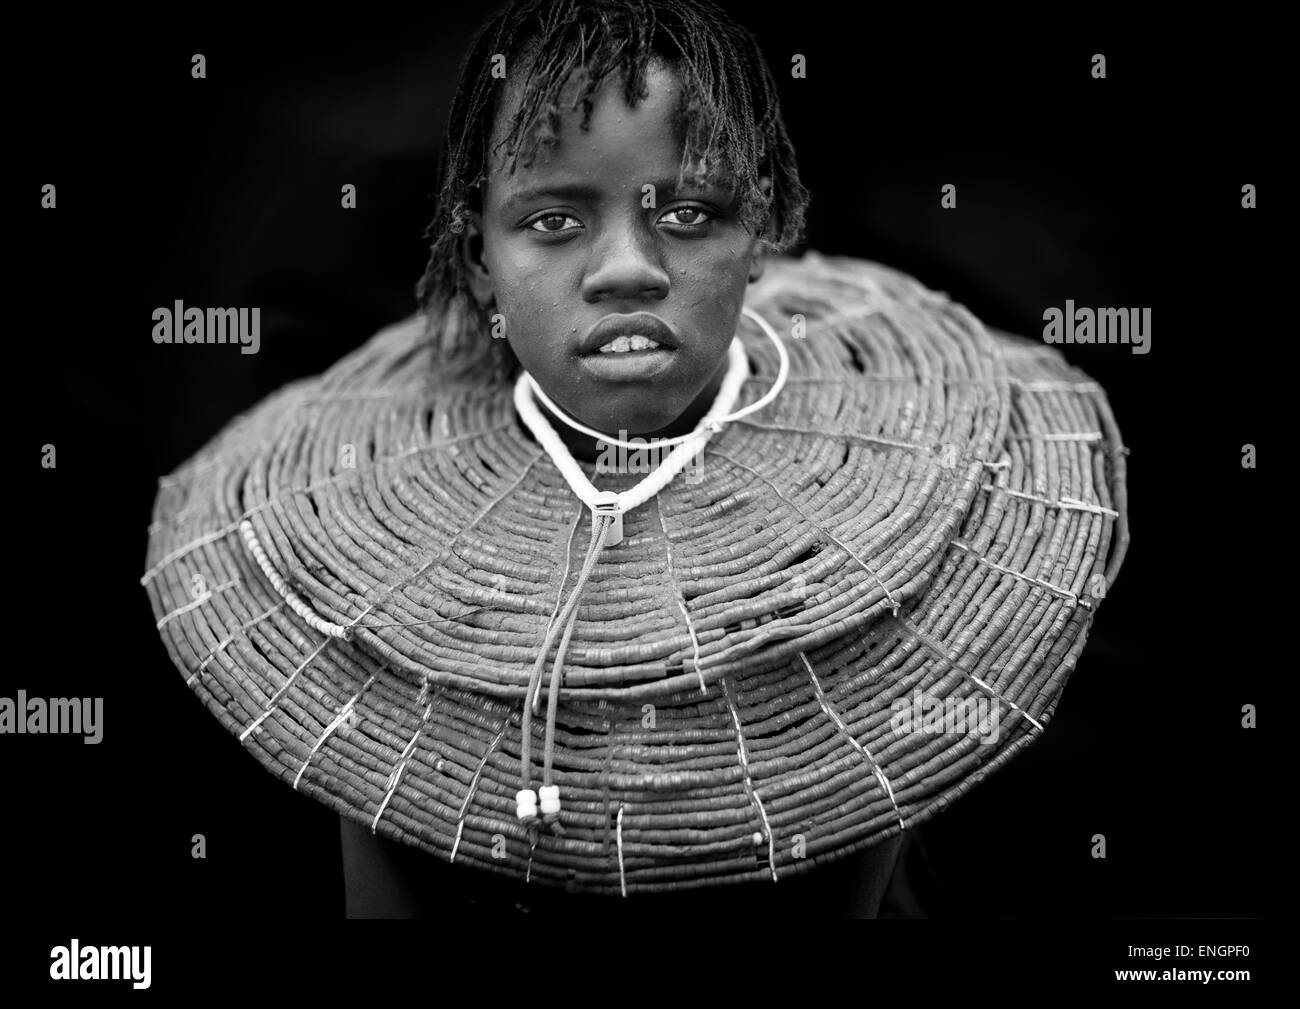 A Pokot Girl Wears Large Necklaces Made From The Stems Of Sedge Grass, Baringo County, Baringo, Kenya - Stock Image